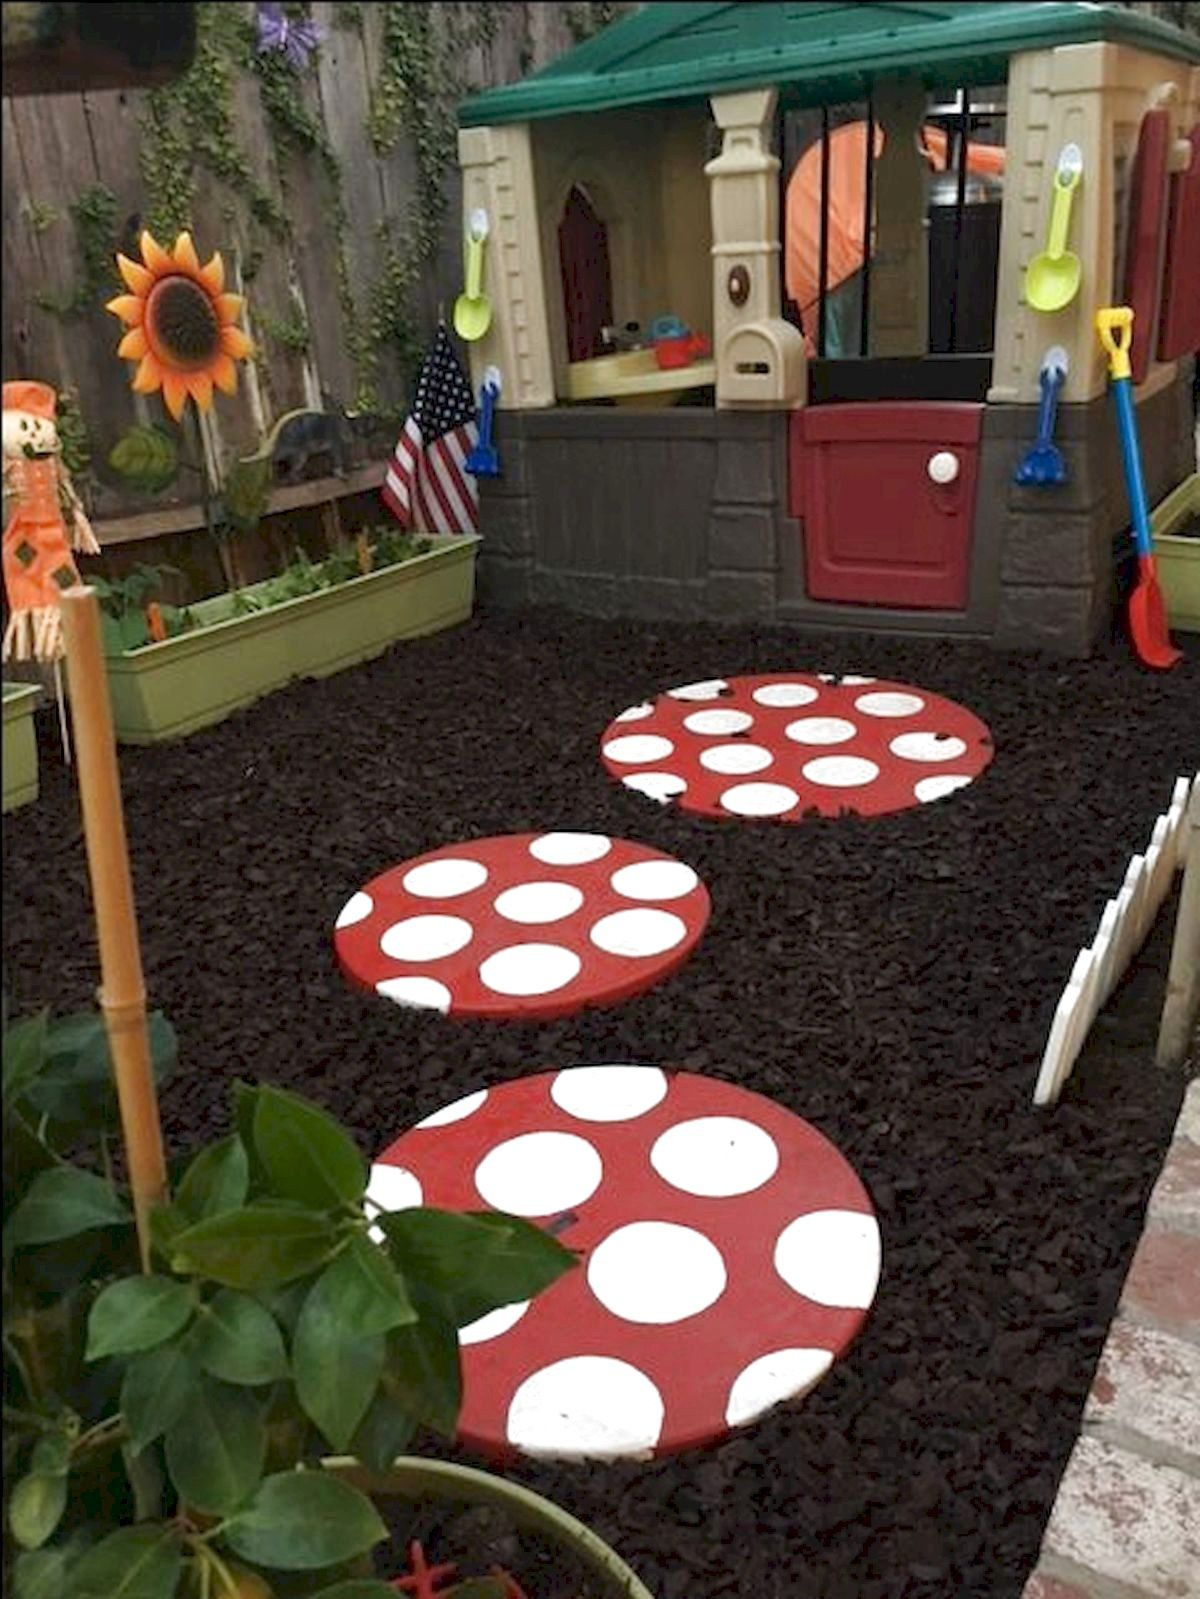 38 Stunning Backyard Design Ideas And Makeover On A Budget The Expert Beautiful Ideas Kid Friendly Backyard Kids Yard Backyard For Kids